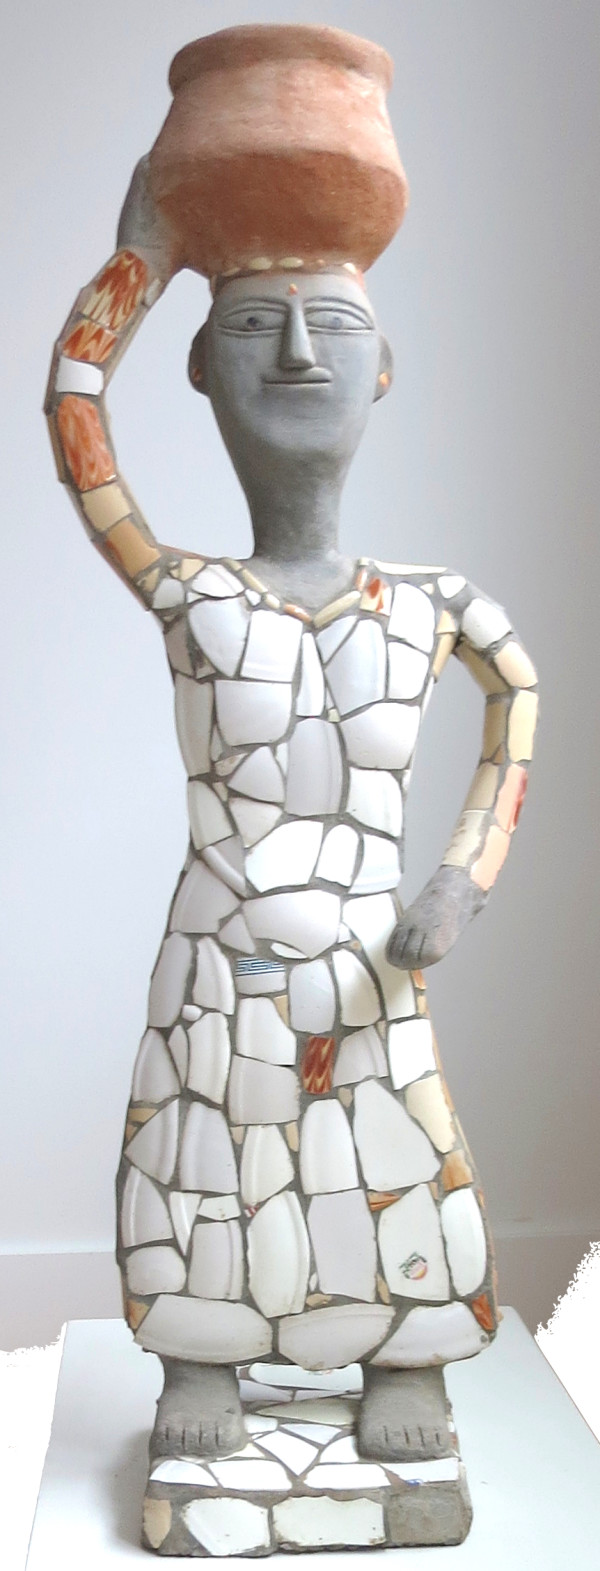 Untitled Figure by Nek Chand